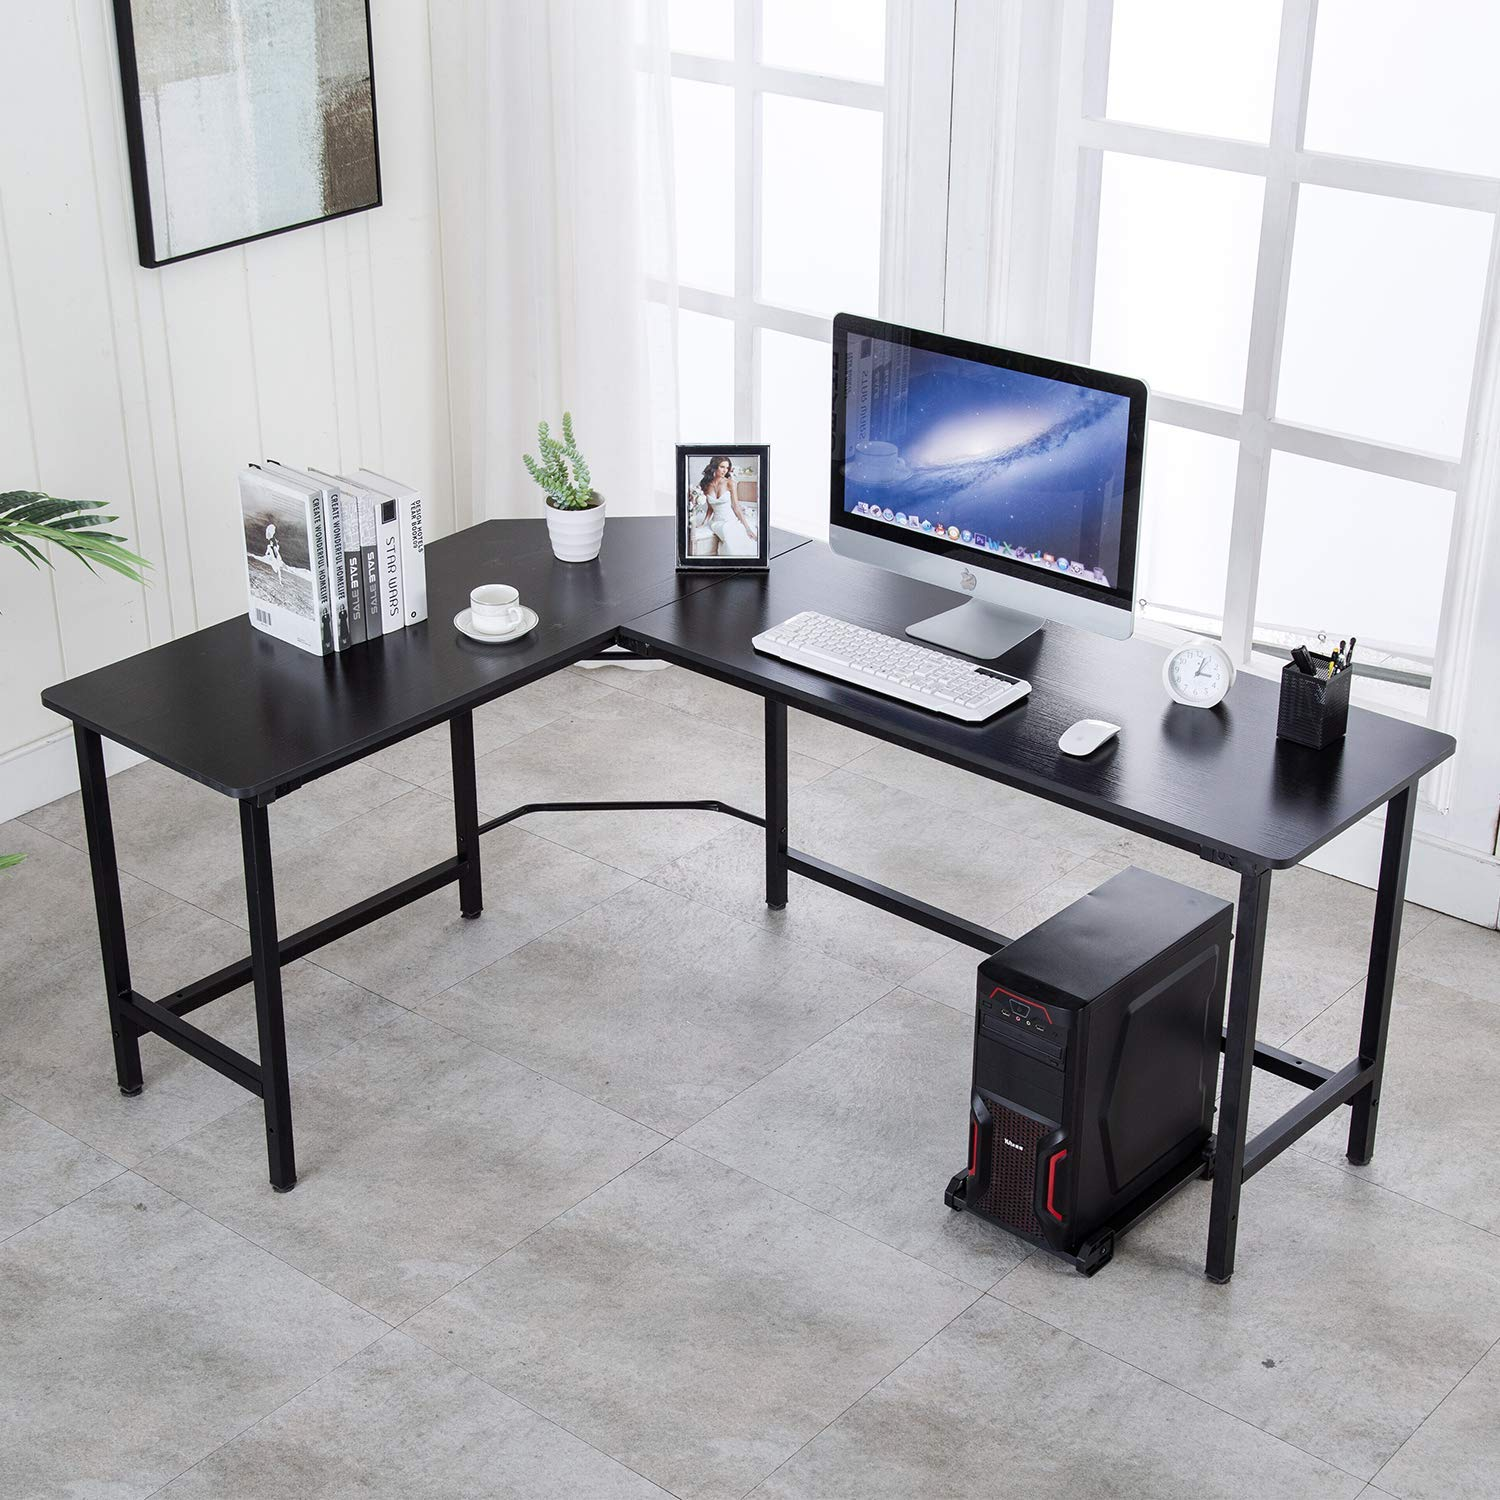 VADIM L-Shaped Computer Desk 66×47 inch with Computer CPU Stand Cart free Home Office Corner Desk fit Multiple screens or Computers, Black